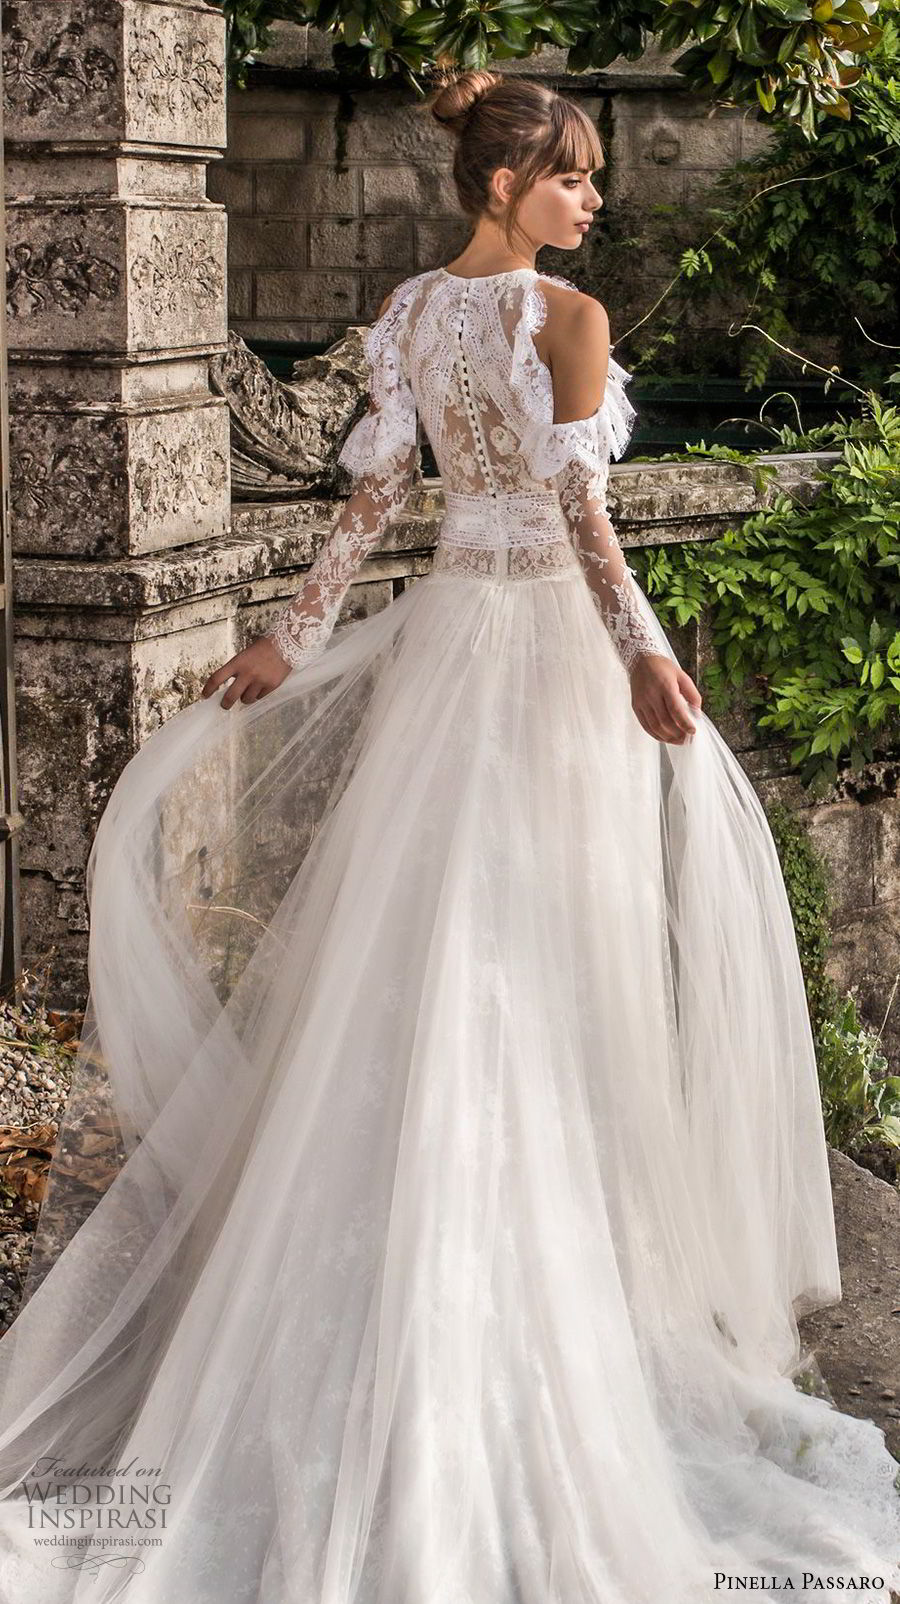 pinella passaro 2018 bridal cold shoulder long sleeves halter neck jewel neck heavily embellished bodice elegant romantic a line wedding dress covered lace back chapel back (7) bv